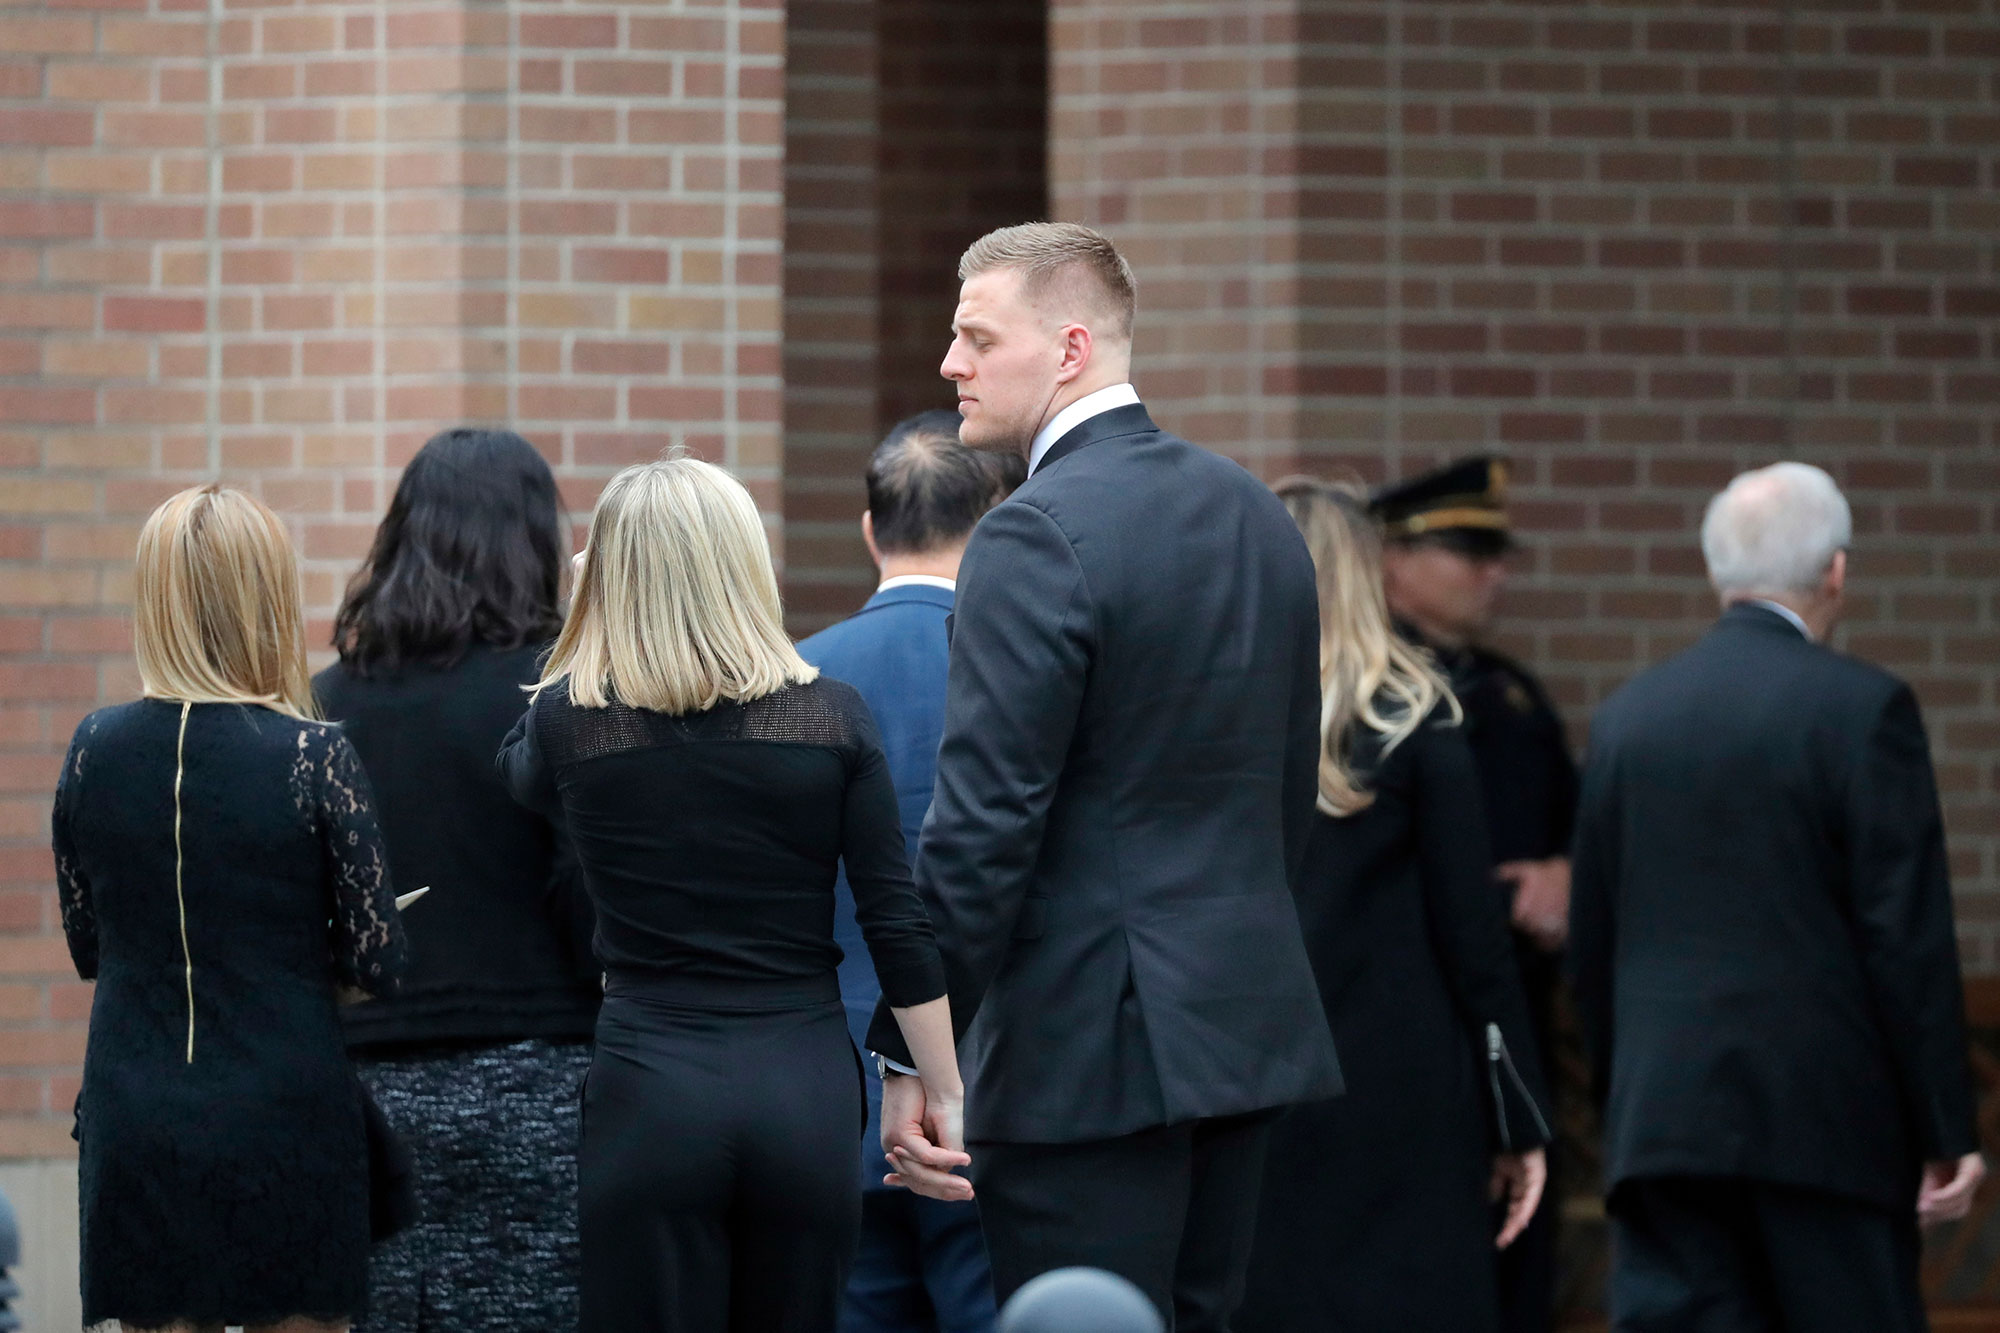 "<div class=""meta image-caption""><div class=""origin-logo origin-image none""><span>none</span></div><span class=""caption-text"">Houston Texans' J. J. Watt arrives at a funeral for former President George H.W. Bush at St. Martin's Episcopal Church Thursday, Dec. 6, 2018, in Houston. (Gerald Herbert/AP Photo)</span></div>"